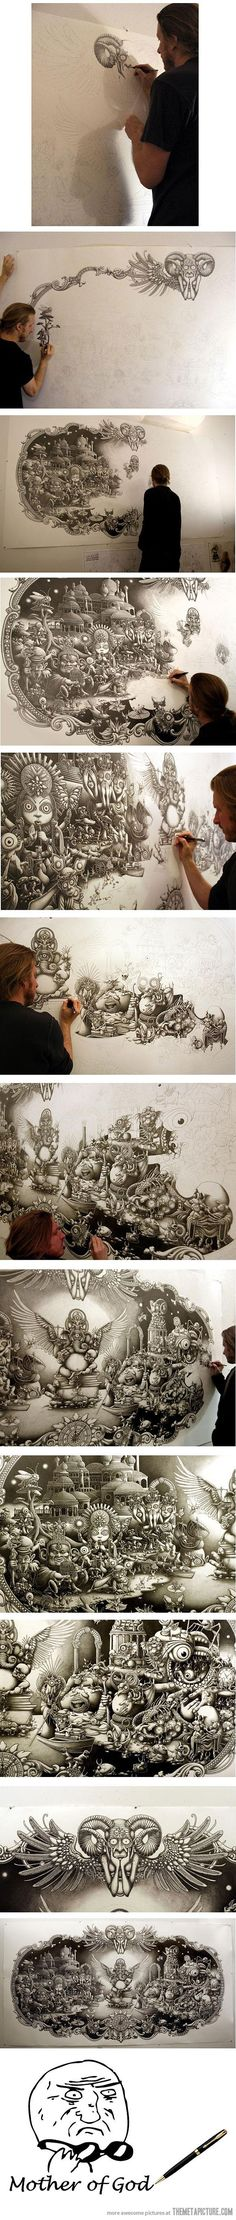 Awesome pen drawing / Dessiner au stylo ? Quelle idée !